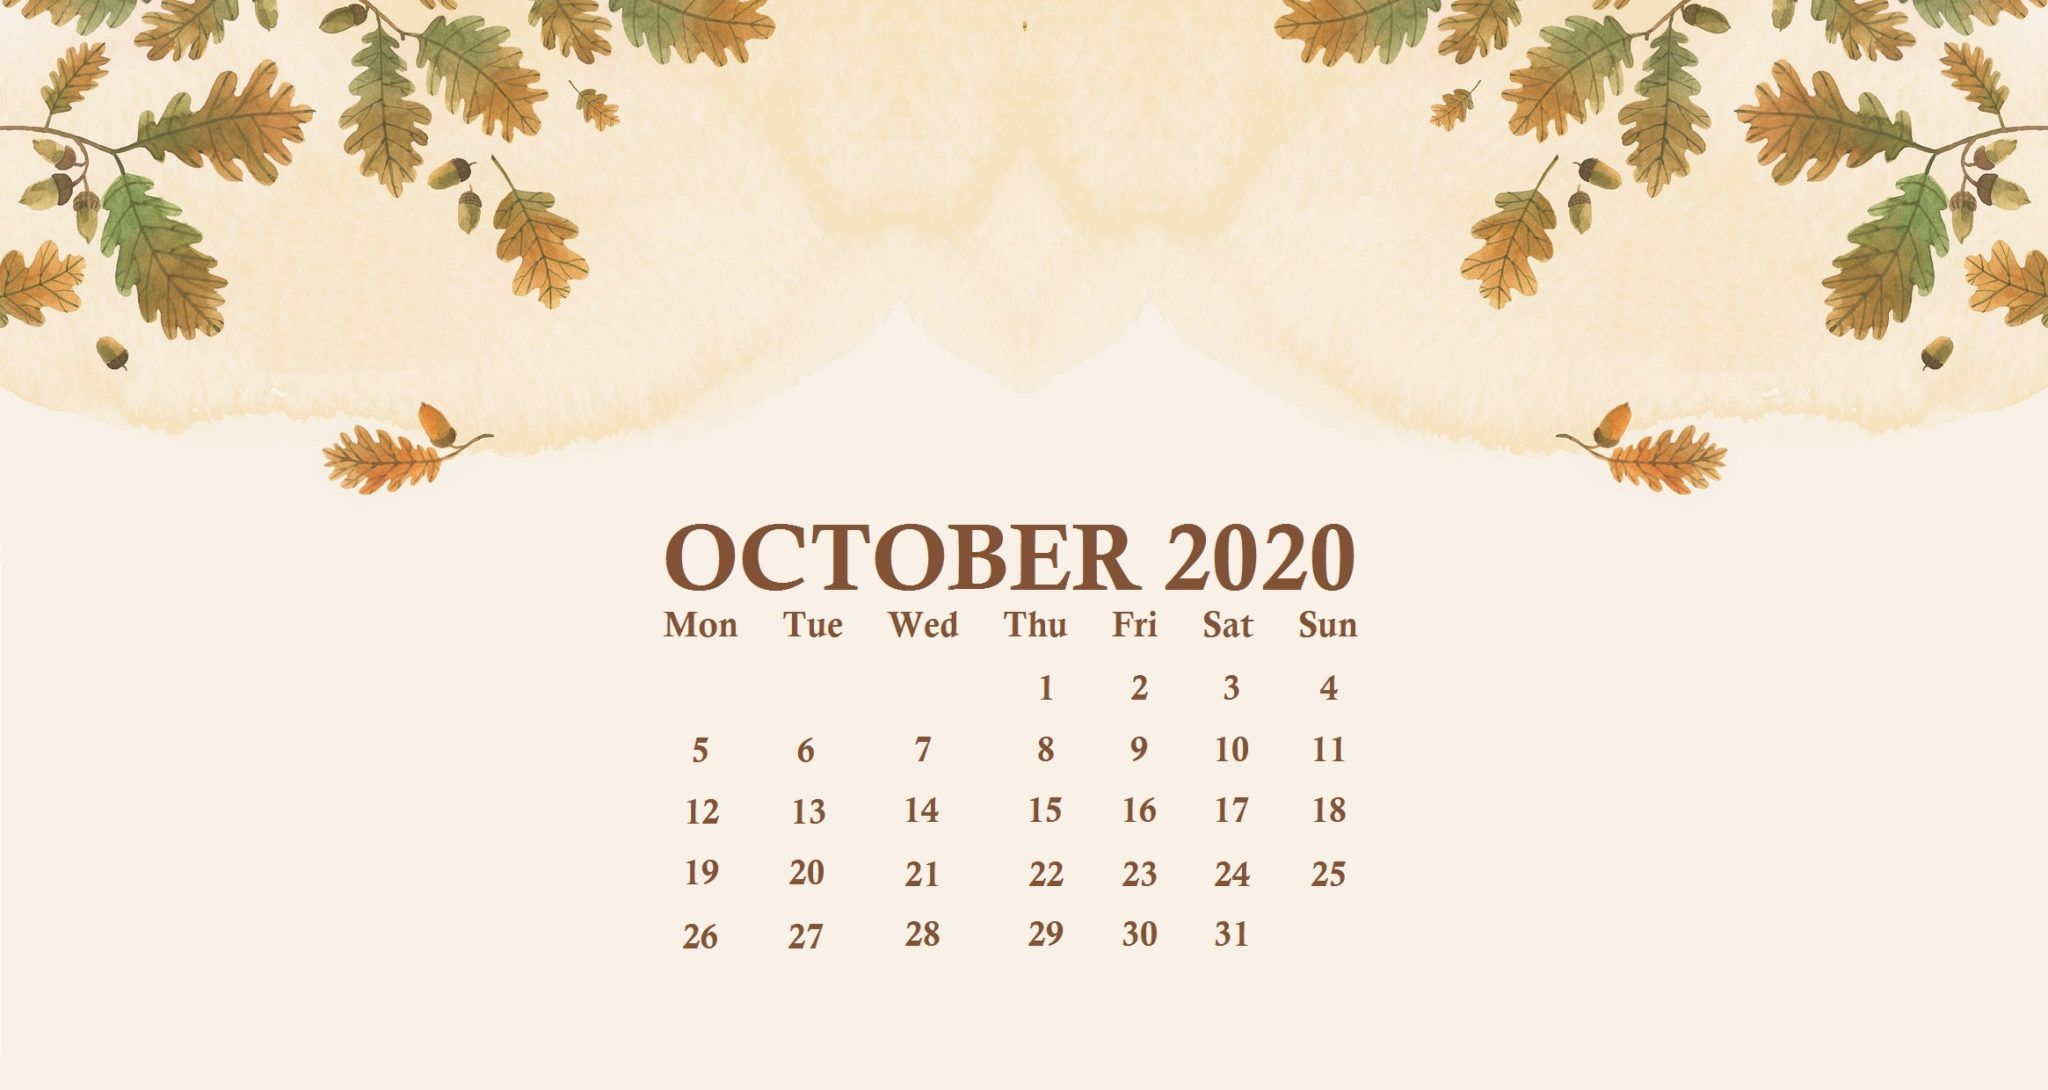 October 2020 Desktop Calendar Wallpaper In 2020 Calendar Wallpaper Desktop Wallpaper Calendar October Calendar Wallpaper